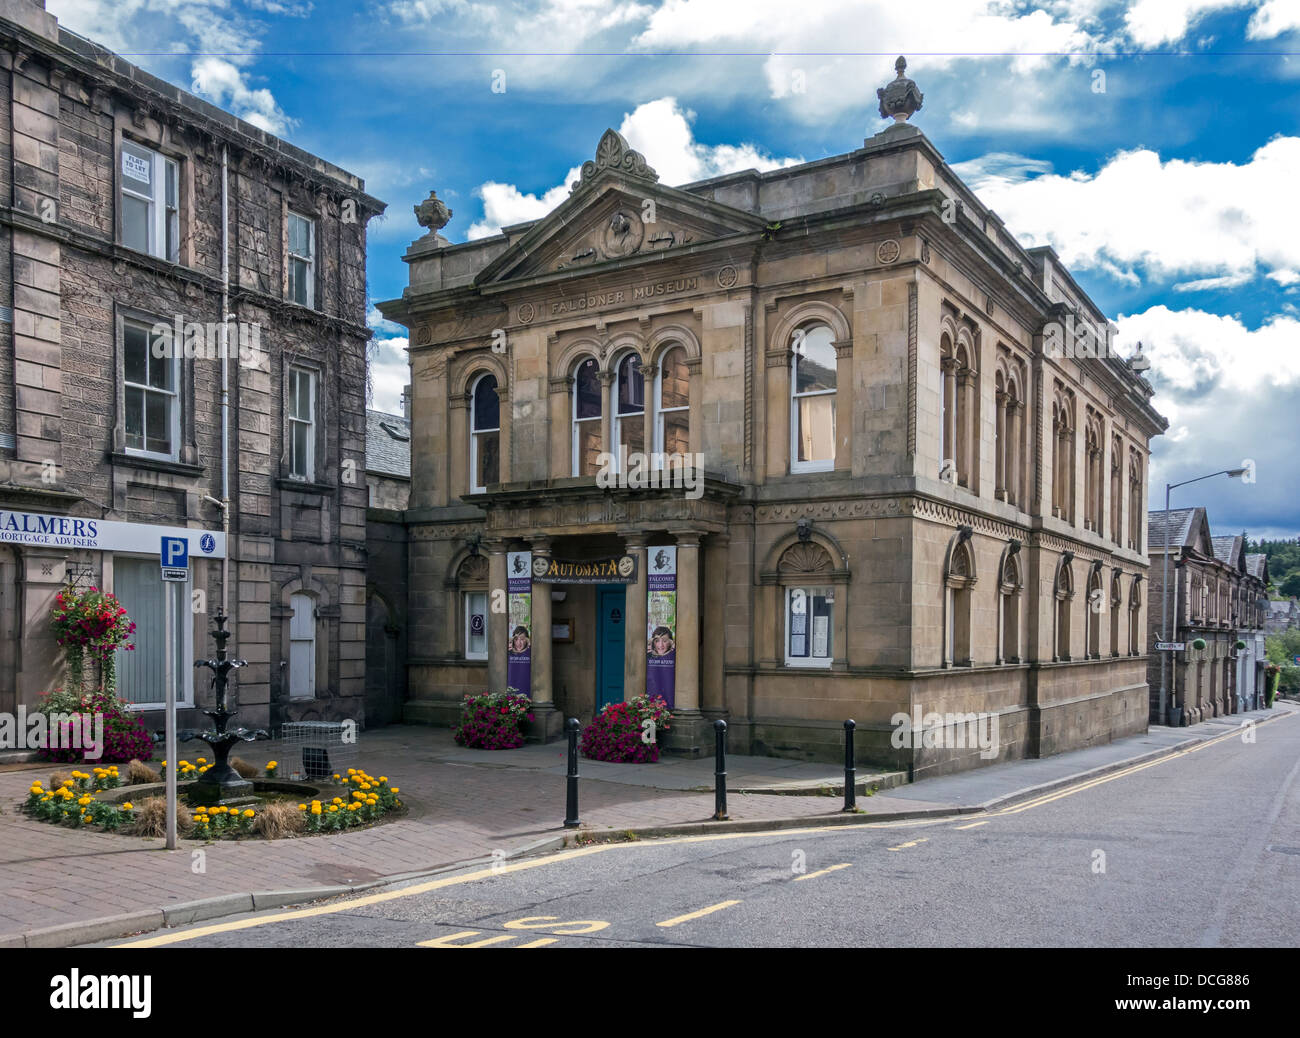 The Falkoner Museum Forres Moray Scotland - Stock Image